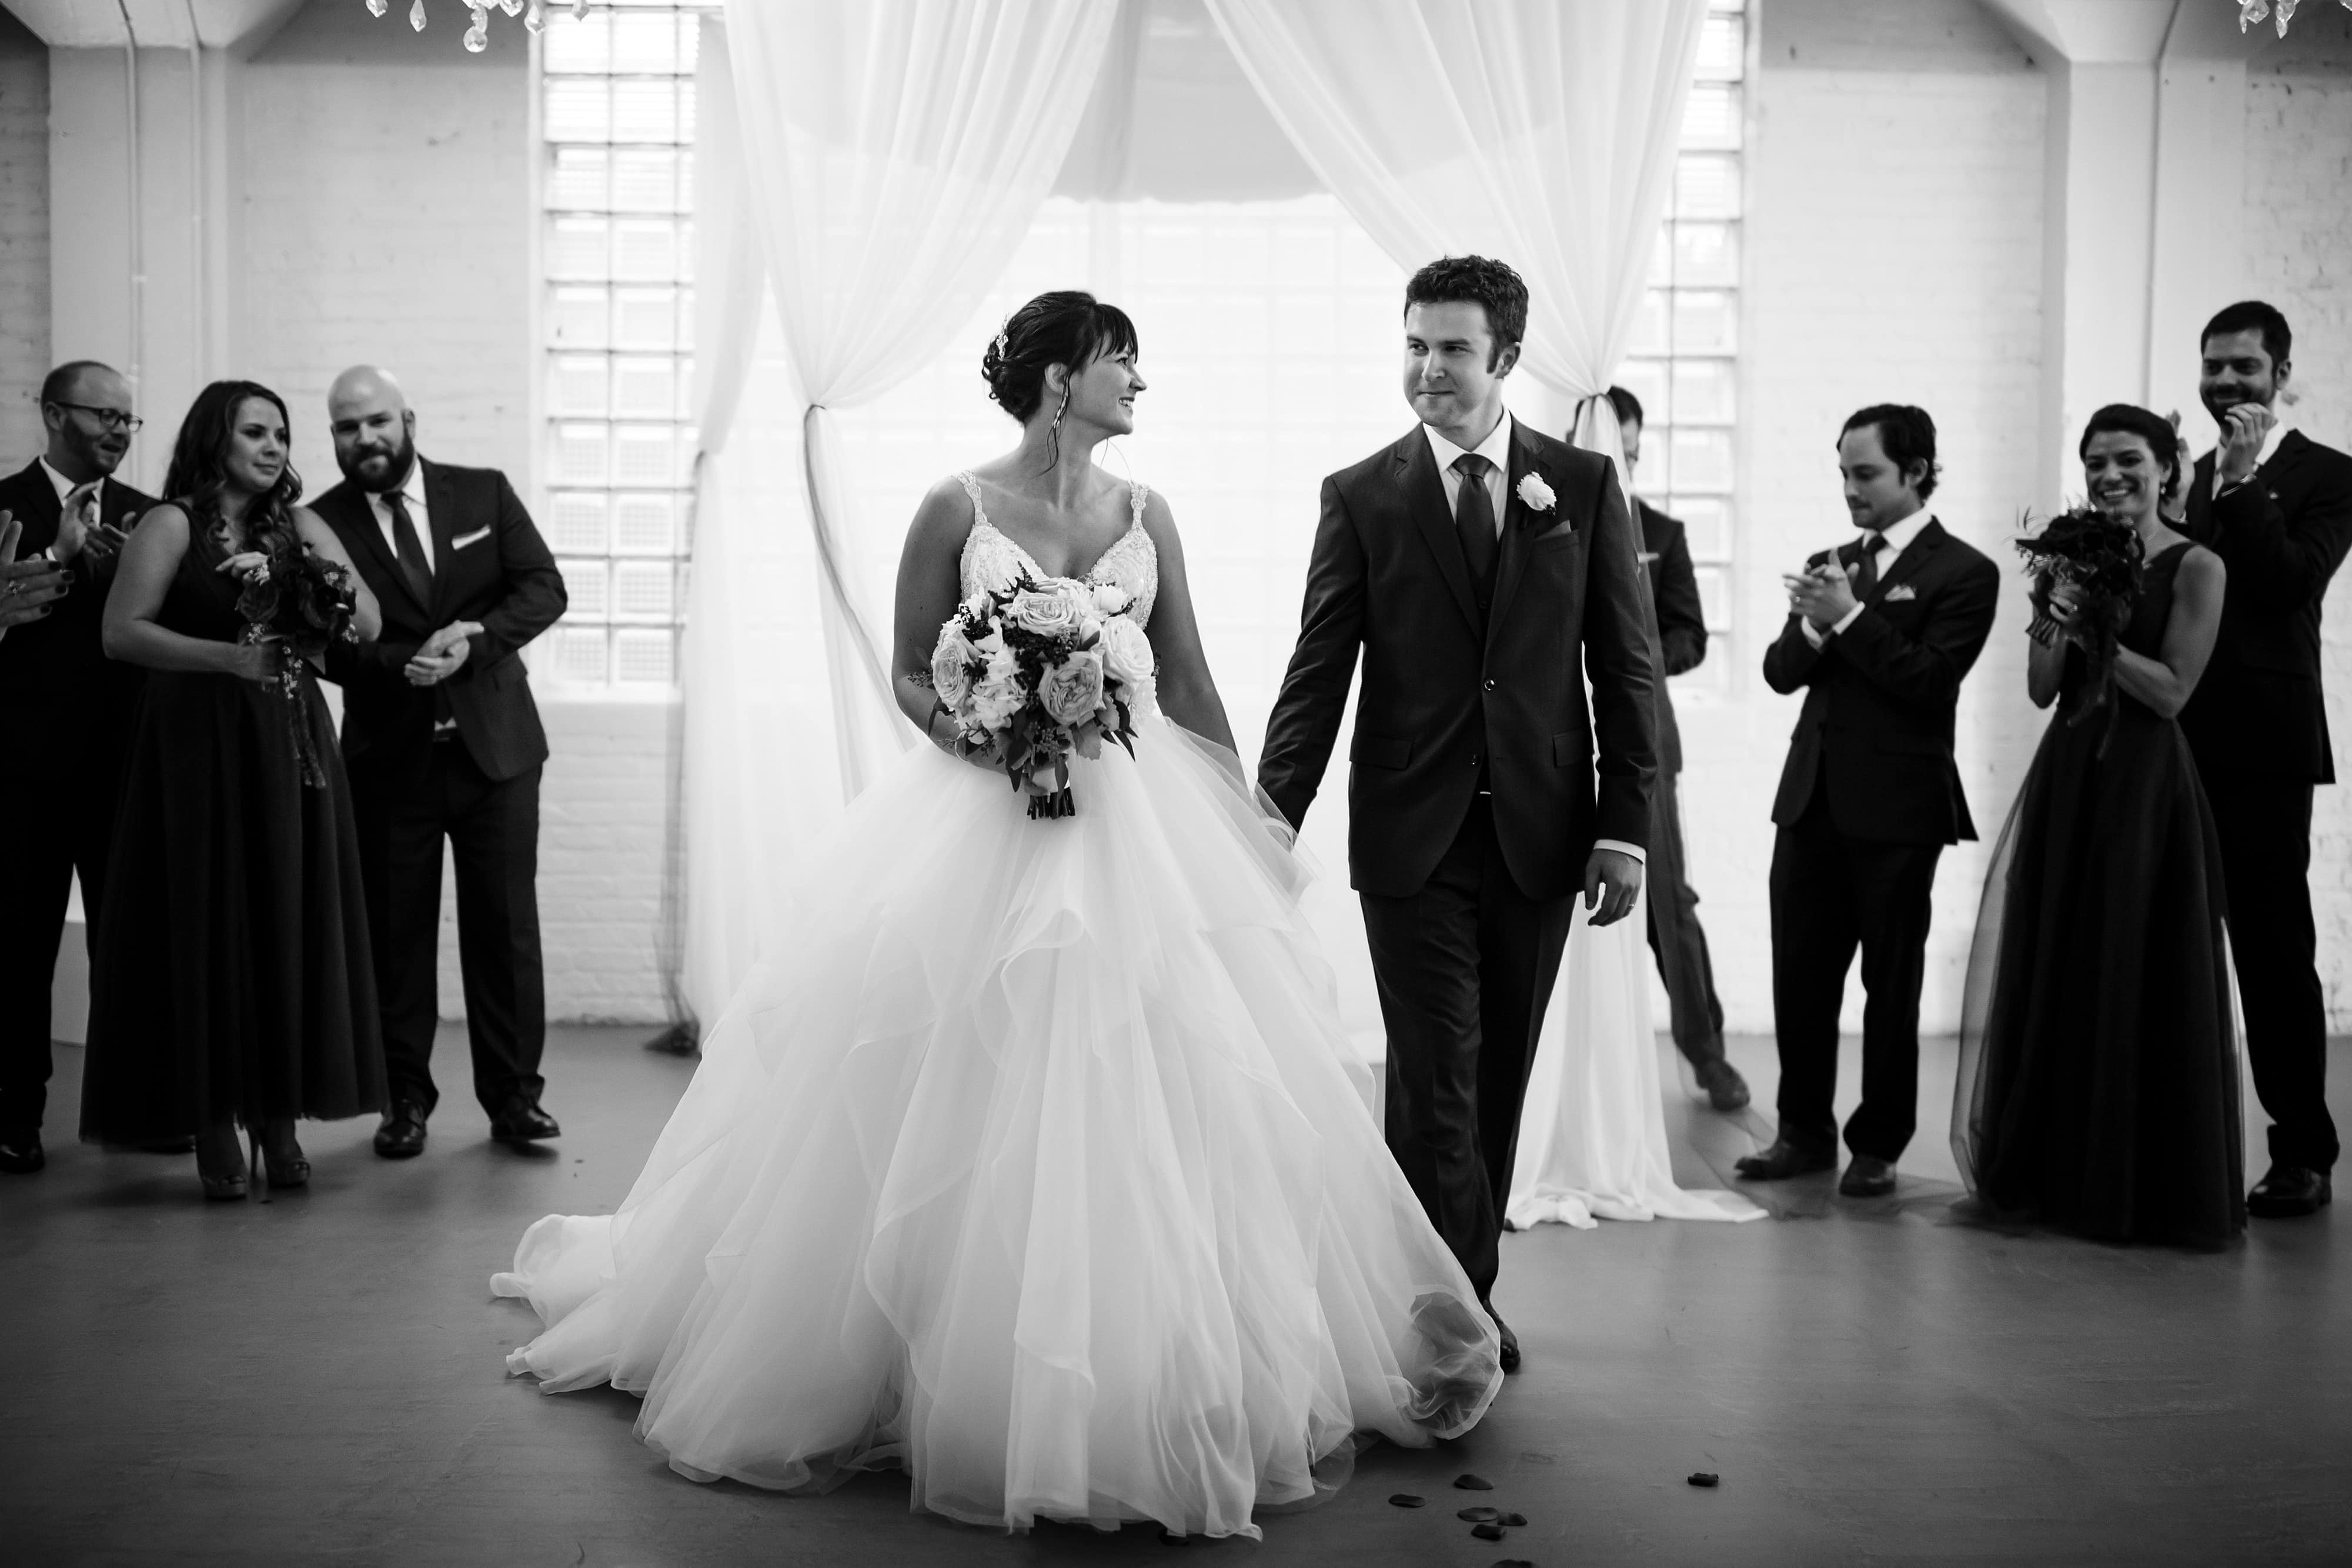 Chelsea and Ori walk down the aisle together after being married at Room 1520